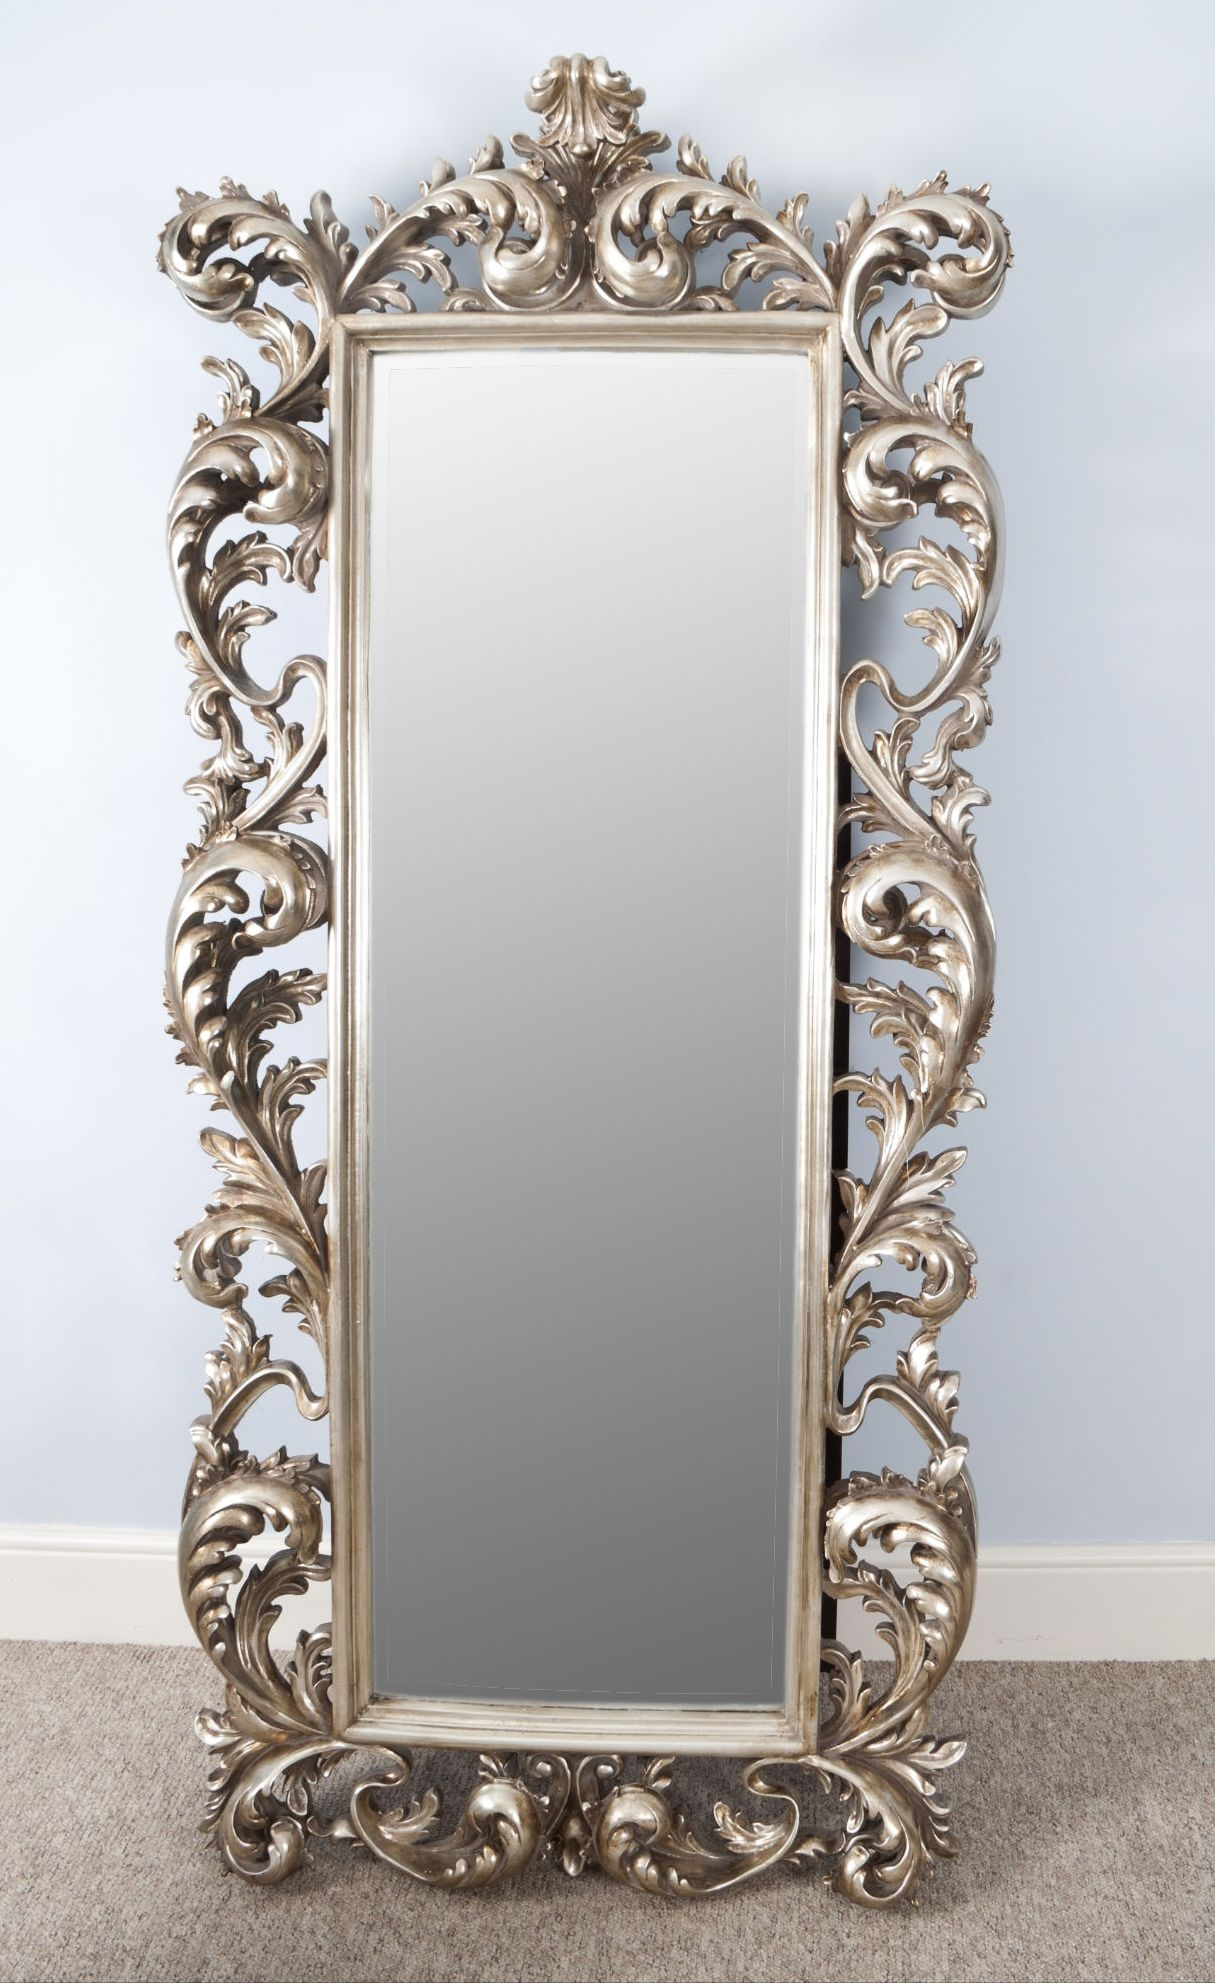 Wondrous Old Oval Mirror Antique Cheval Wall Mirror Likewise Grey For Silver Mirrors For Sale (View 5 of 15)